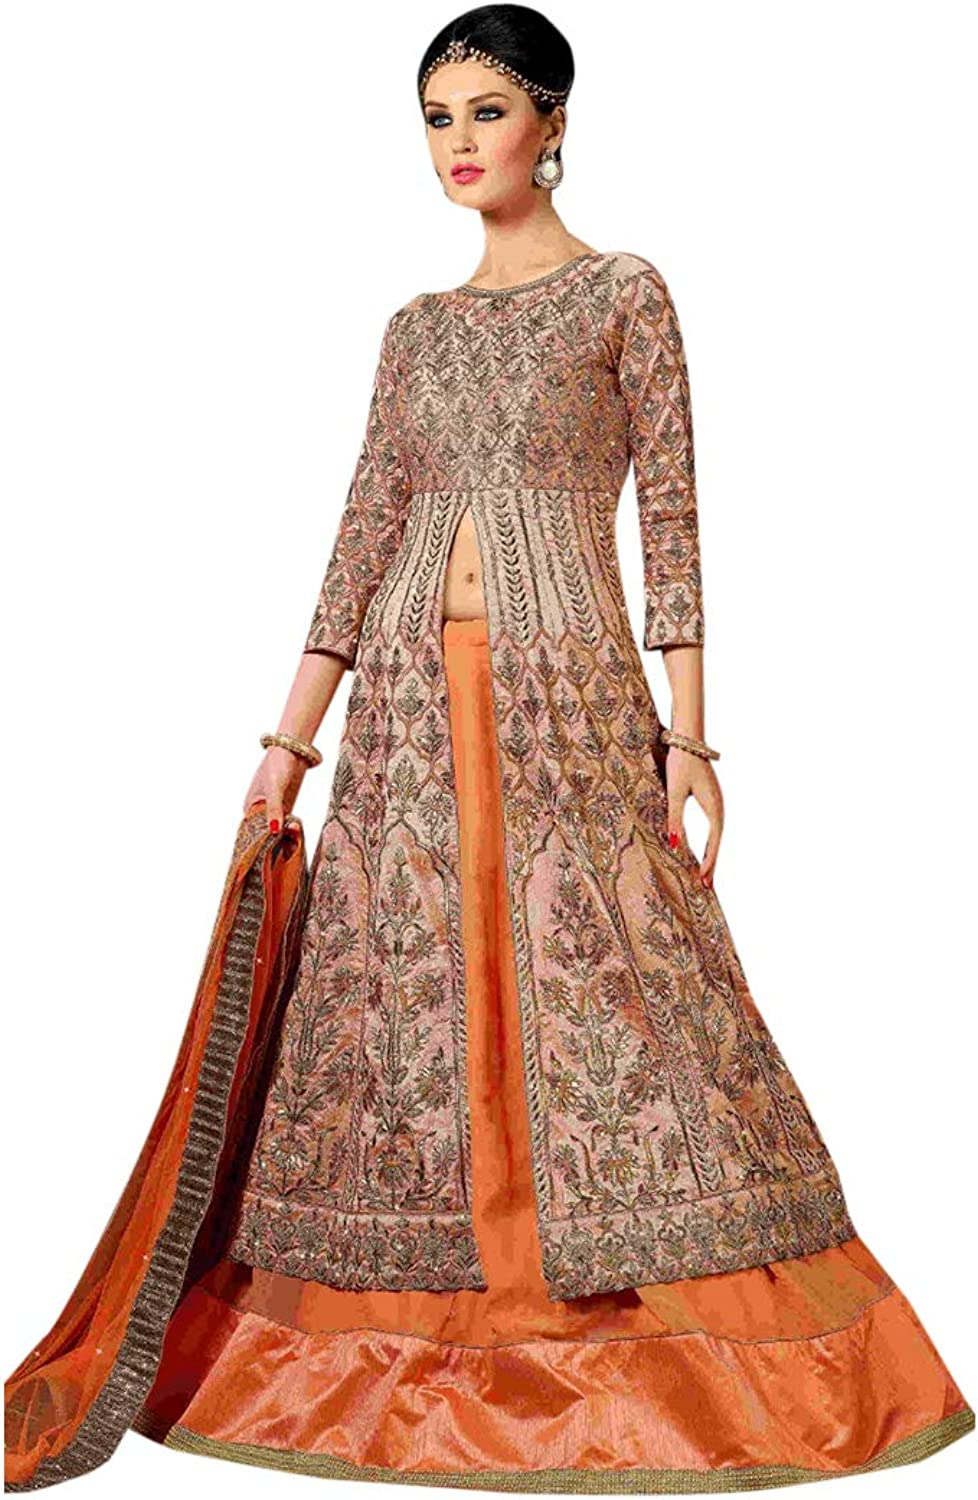 Stylish Bollywood Party wear Embroidered Skirt style Salwar Kameez Front split for Women 7793